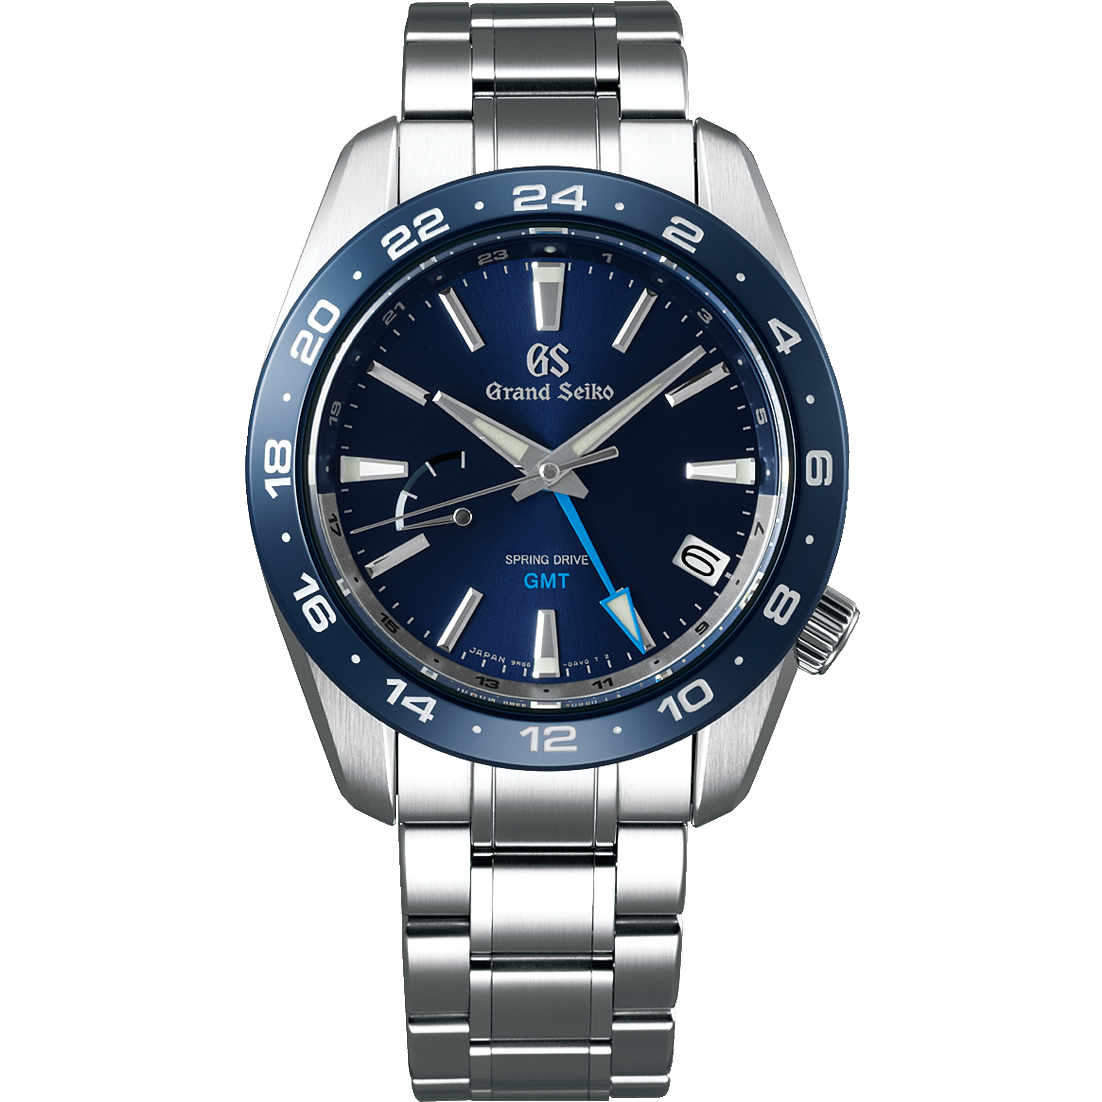 Grand Seiko Spring Drive GMT with Blue Dial